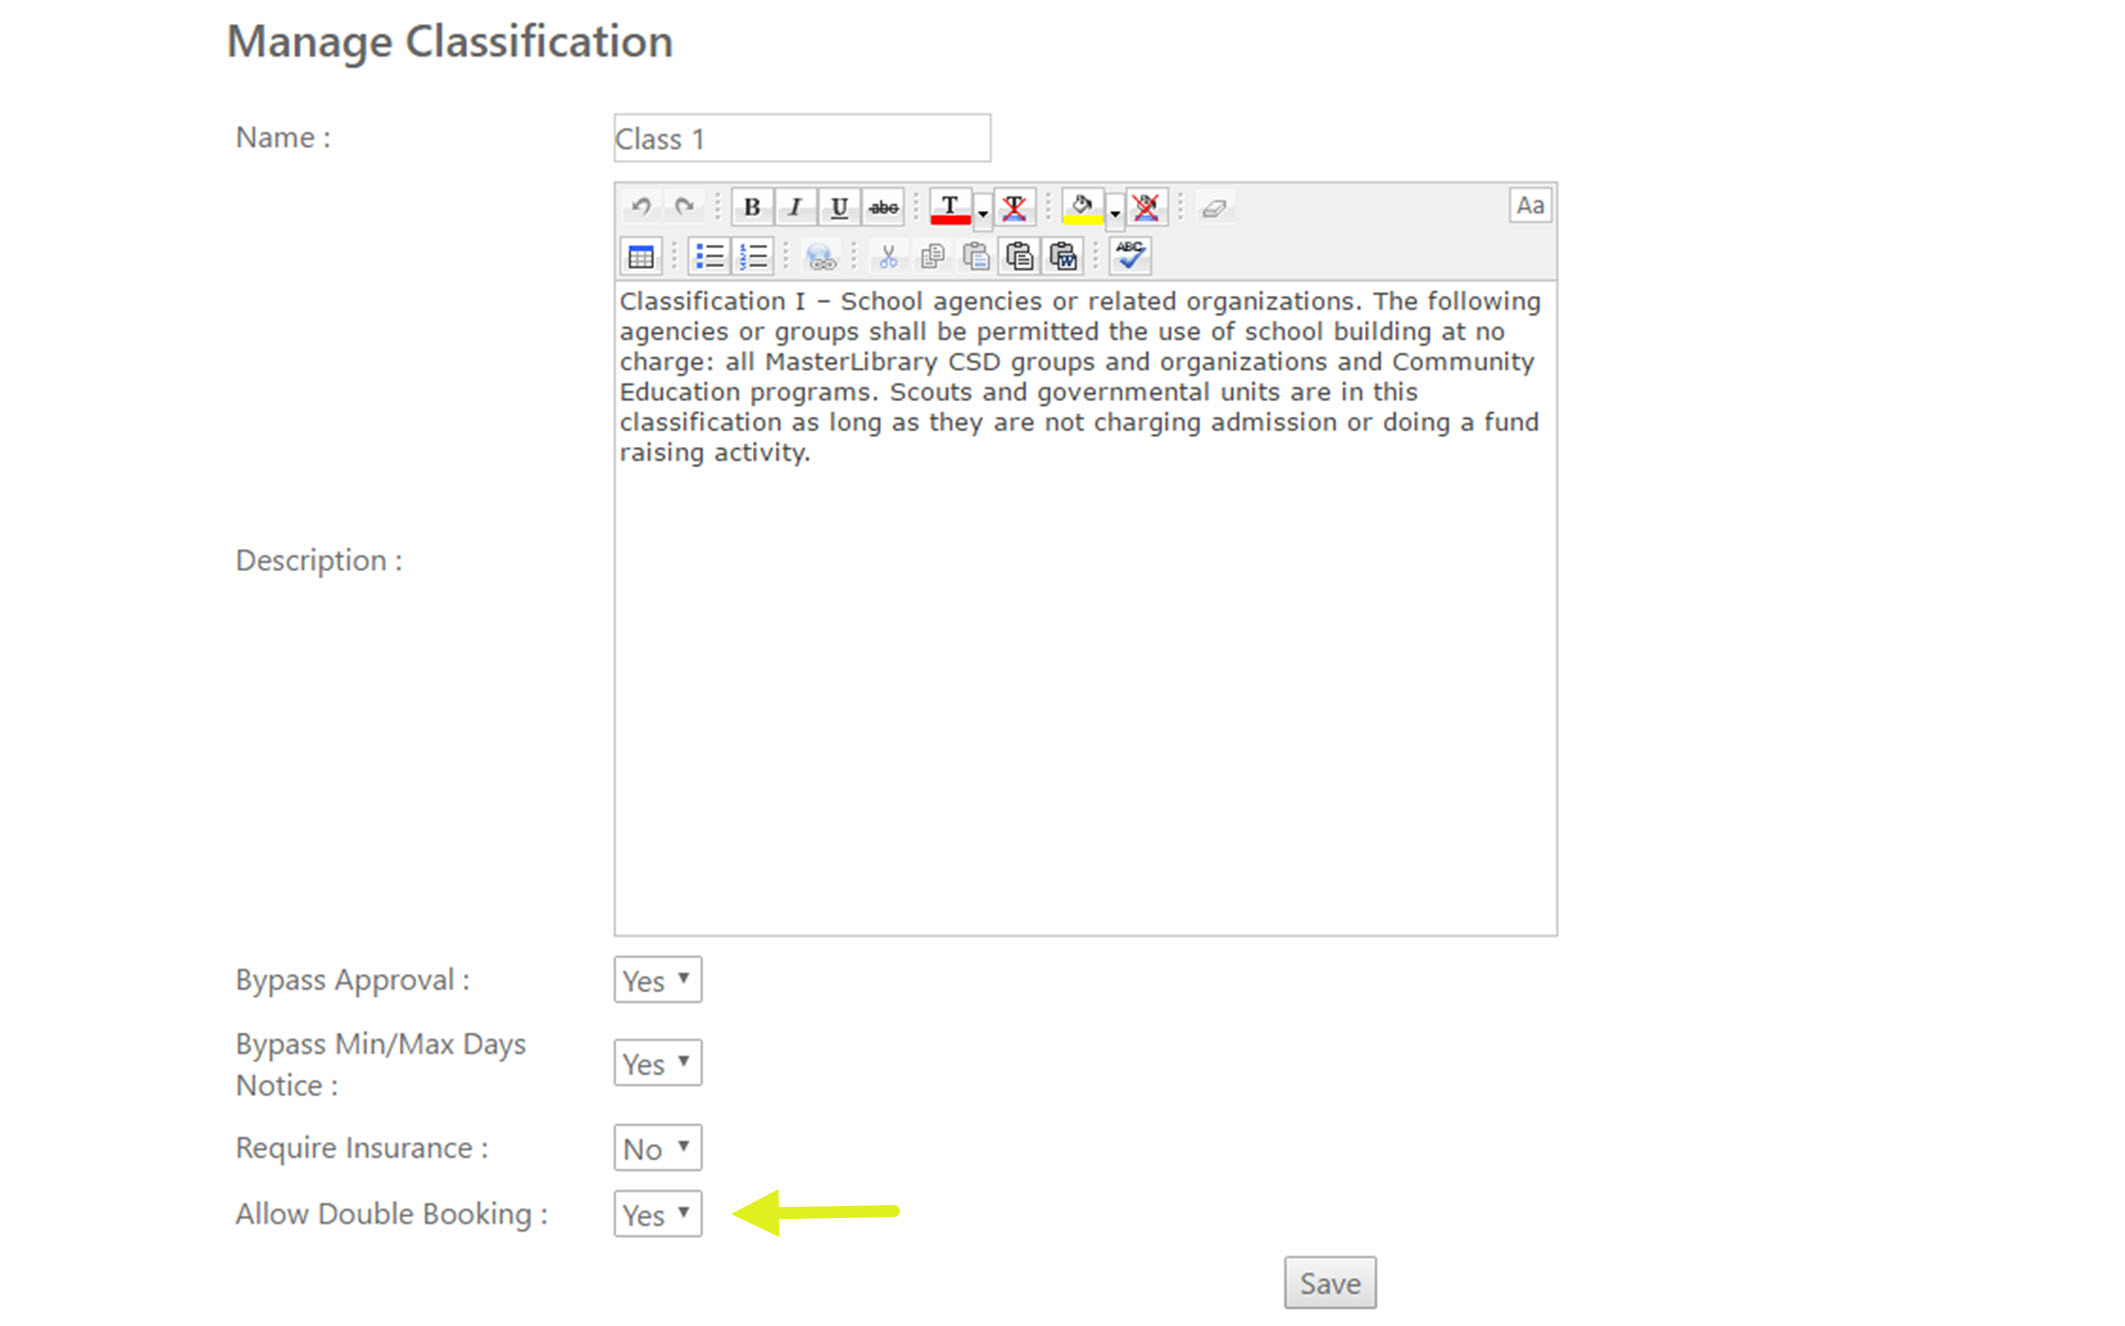 The Manage Classification screen with the Allow Double Booking field highlighted.